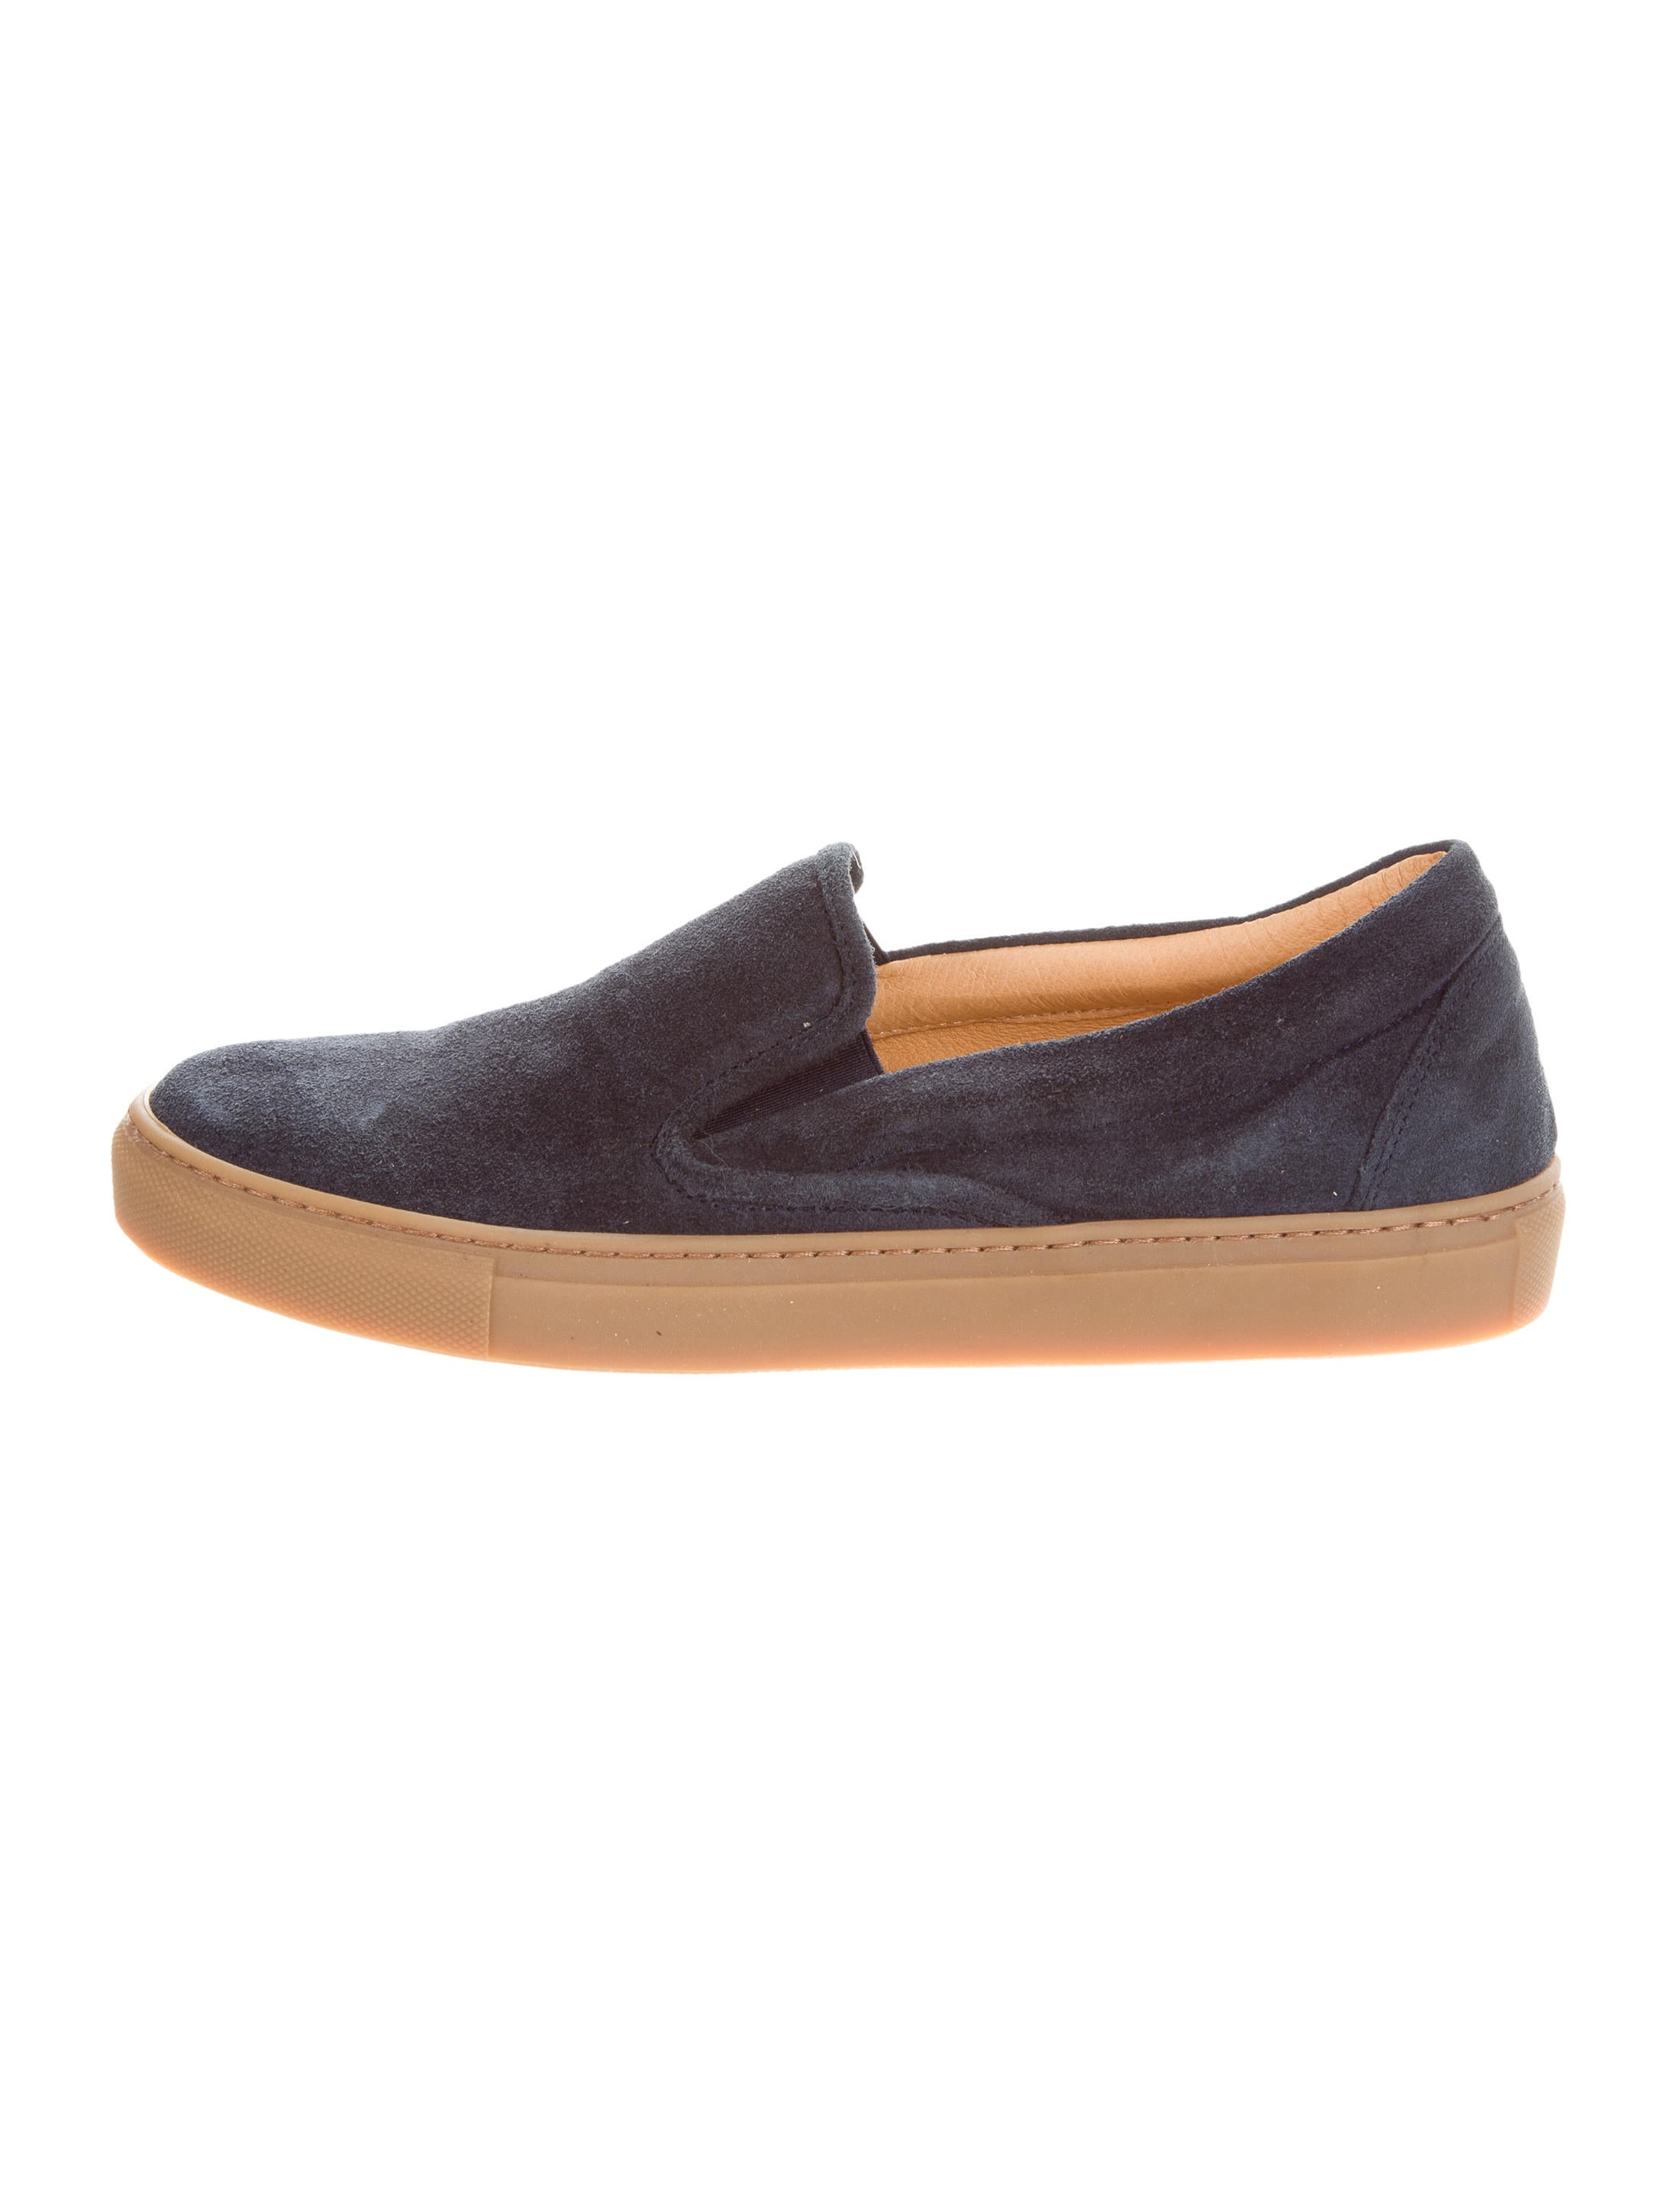 barney s suede slip on shoes shoes bar20338 the realreal